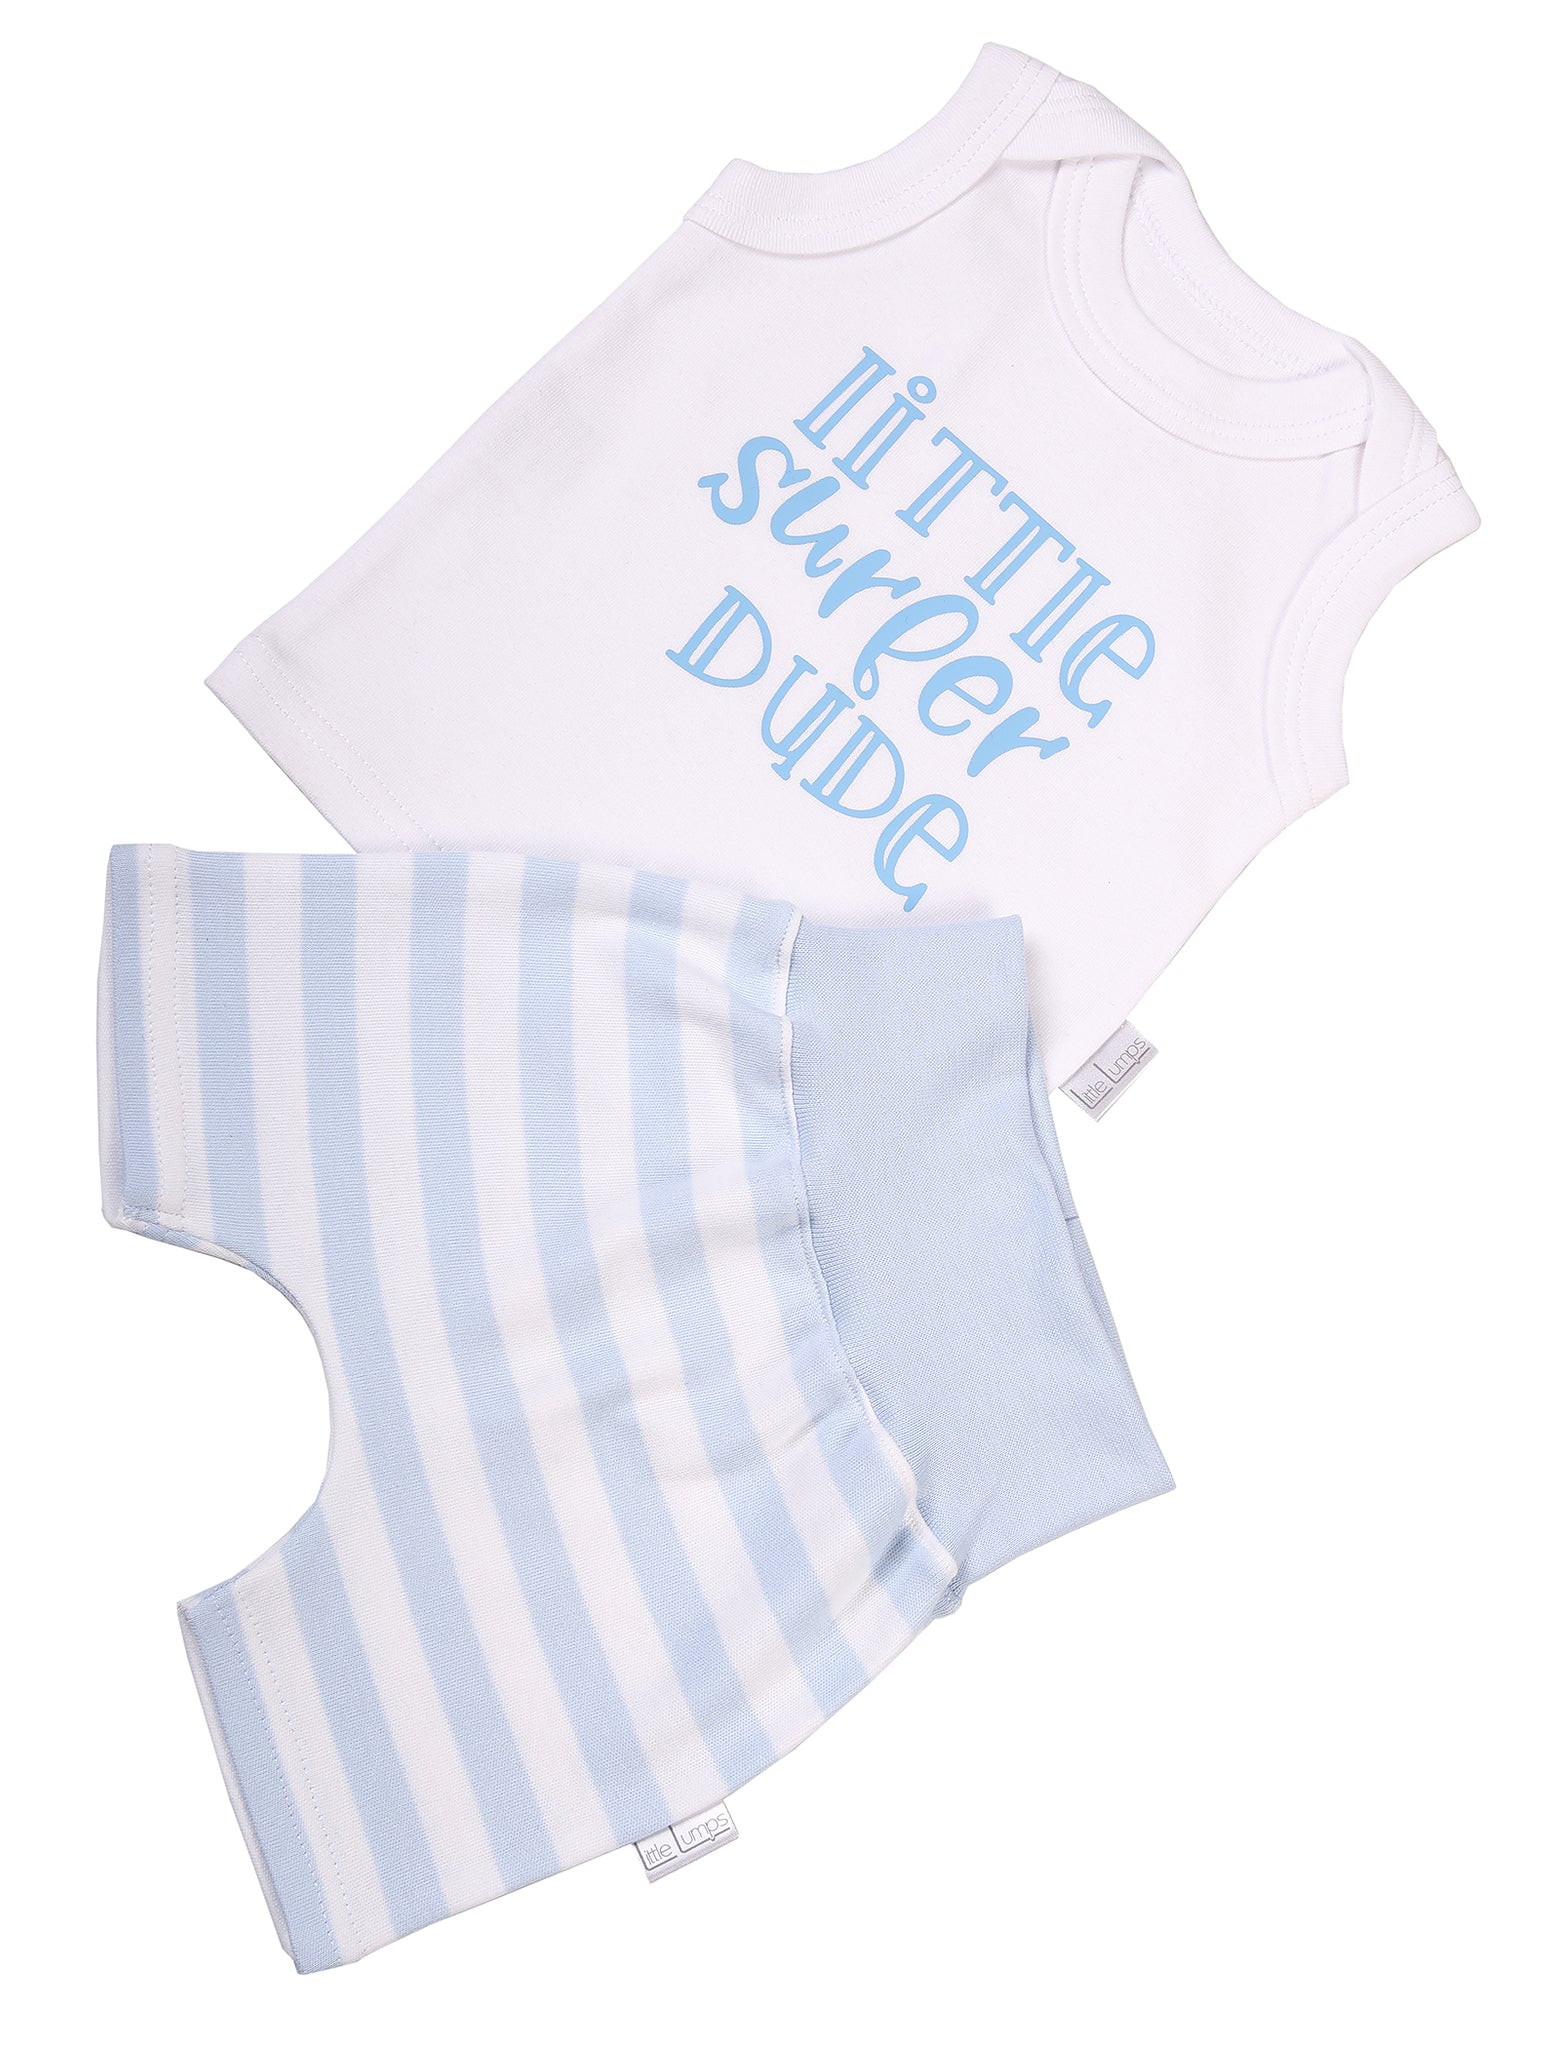 Baby Vest & Striped Shorts - Little Lumps